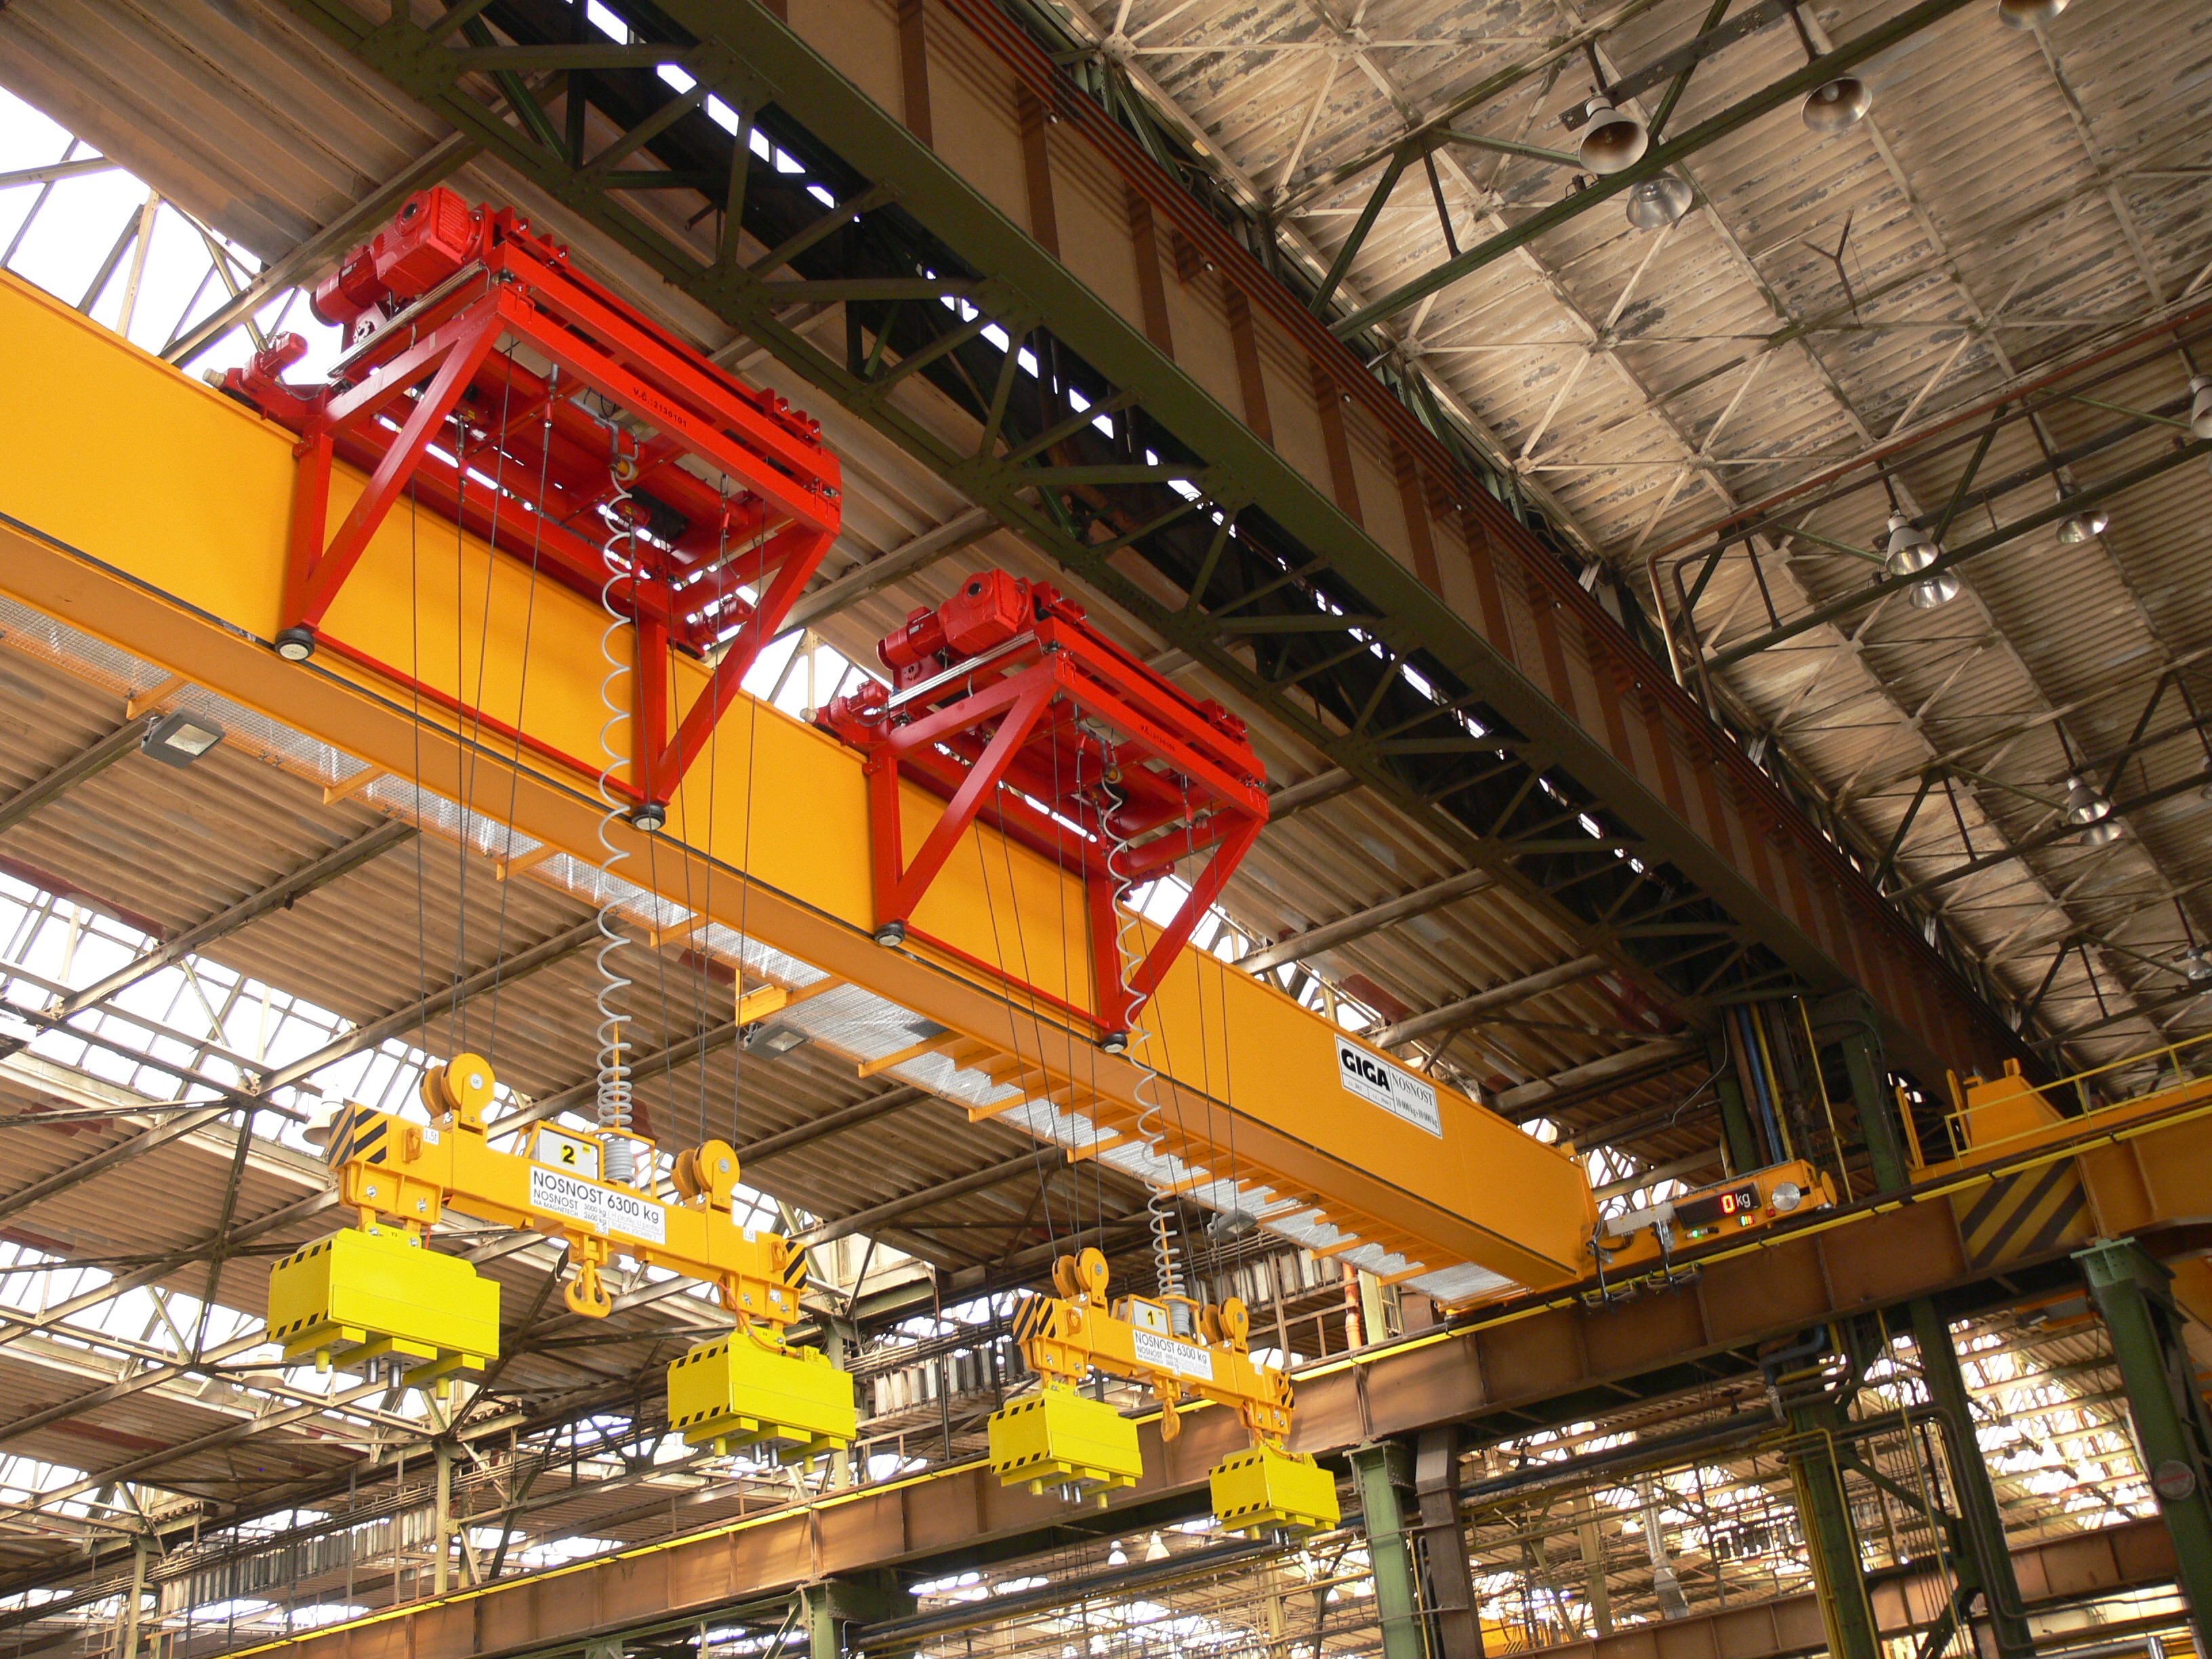 Delivery of special bridge cranes with cantilever hoists for the NYPRO metallurgical storehouse